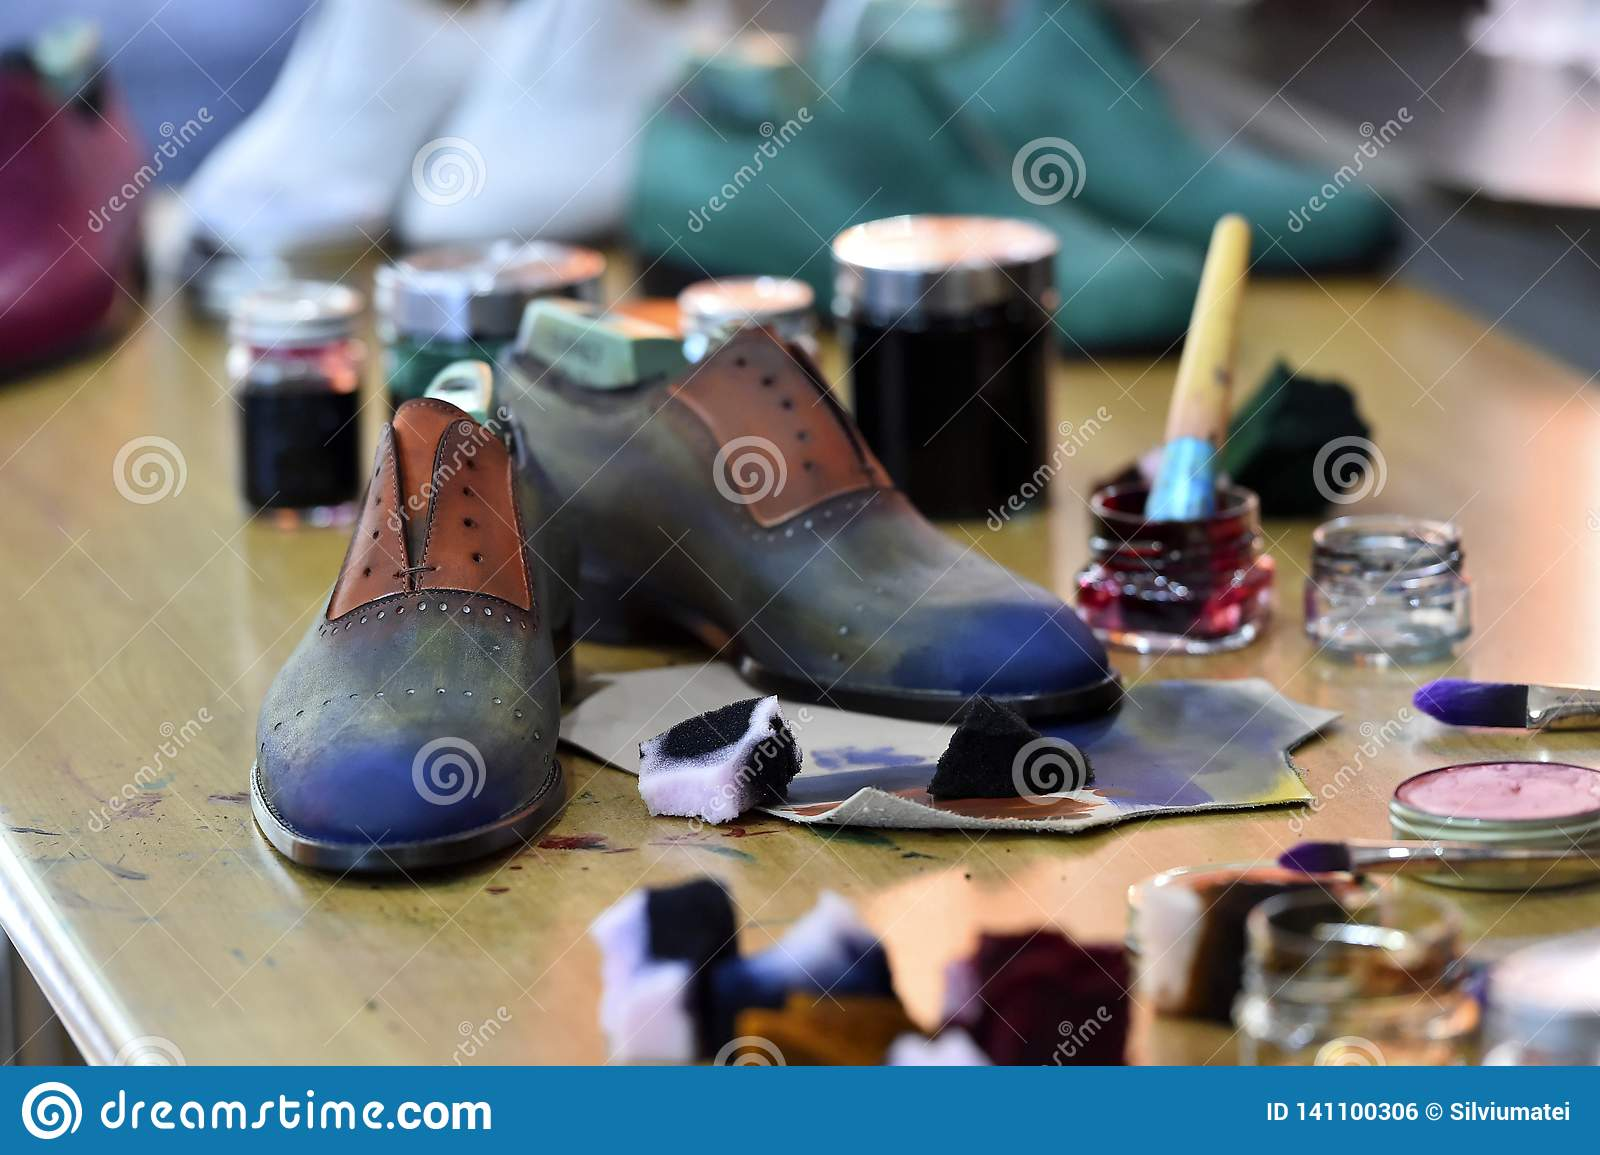 Handmade colorful luxury man shoes are hand-painted in a production factory.